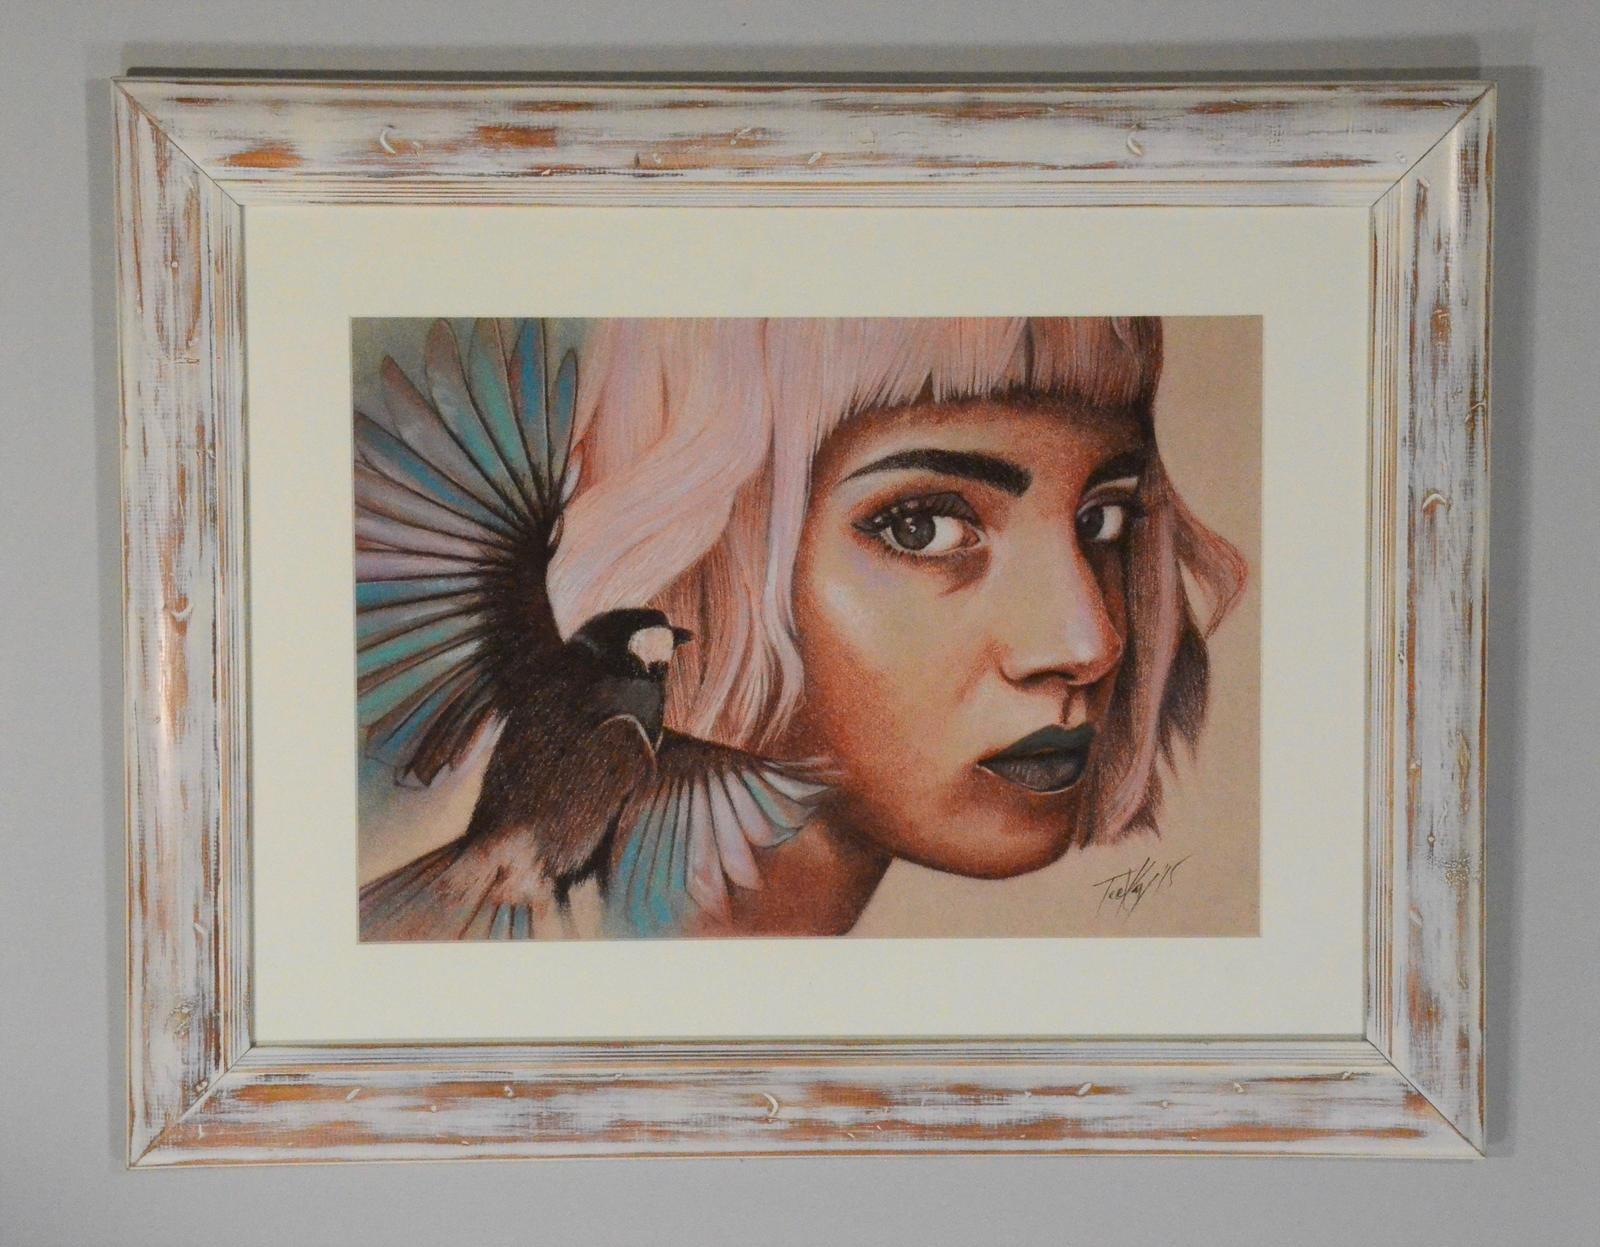 Fly in upcycled frame